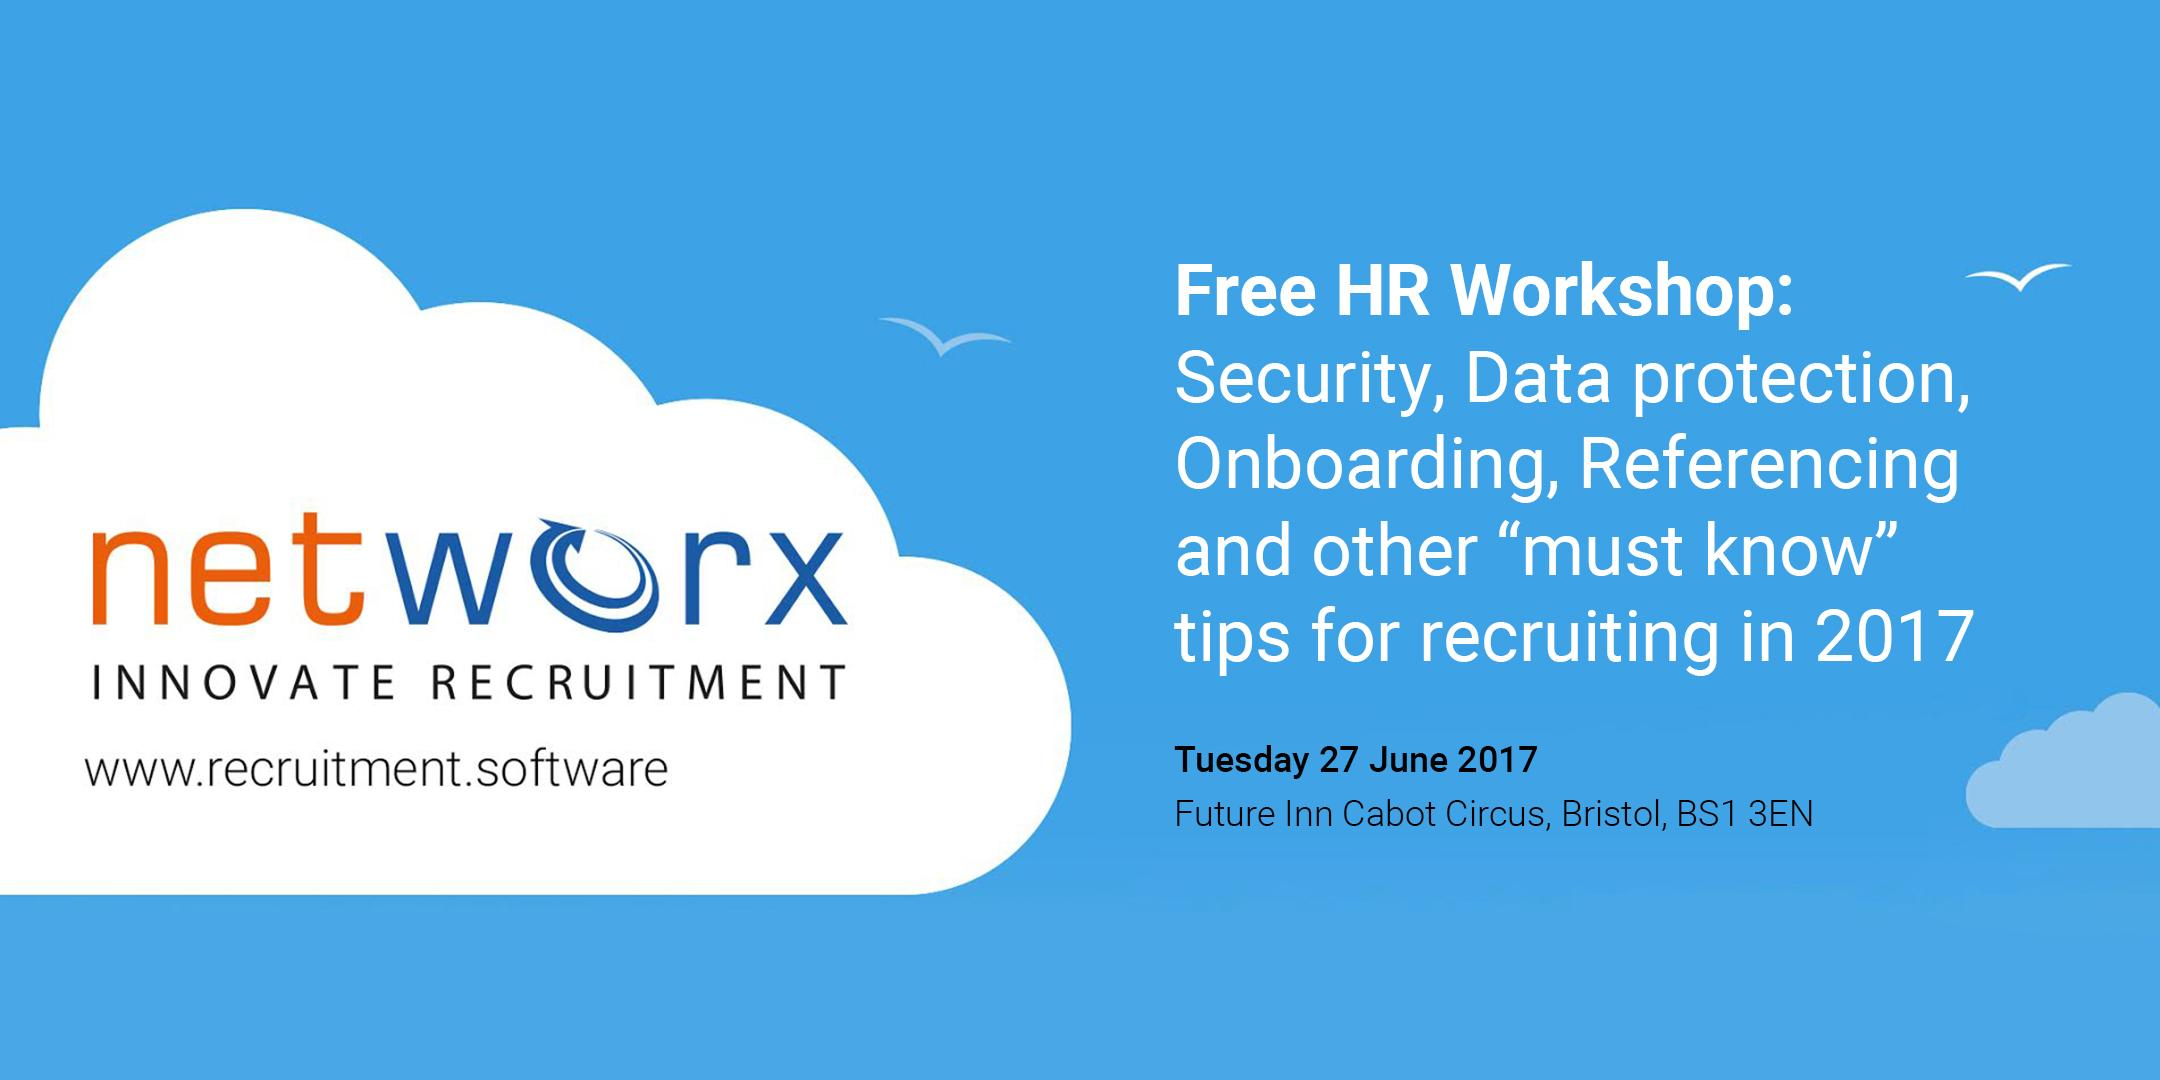 FREE HR WORKSHOP :  Security, Data protection